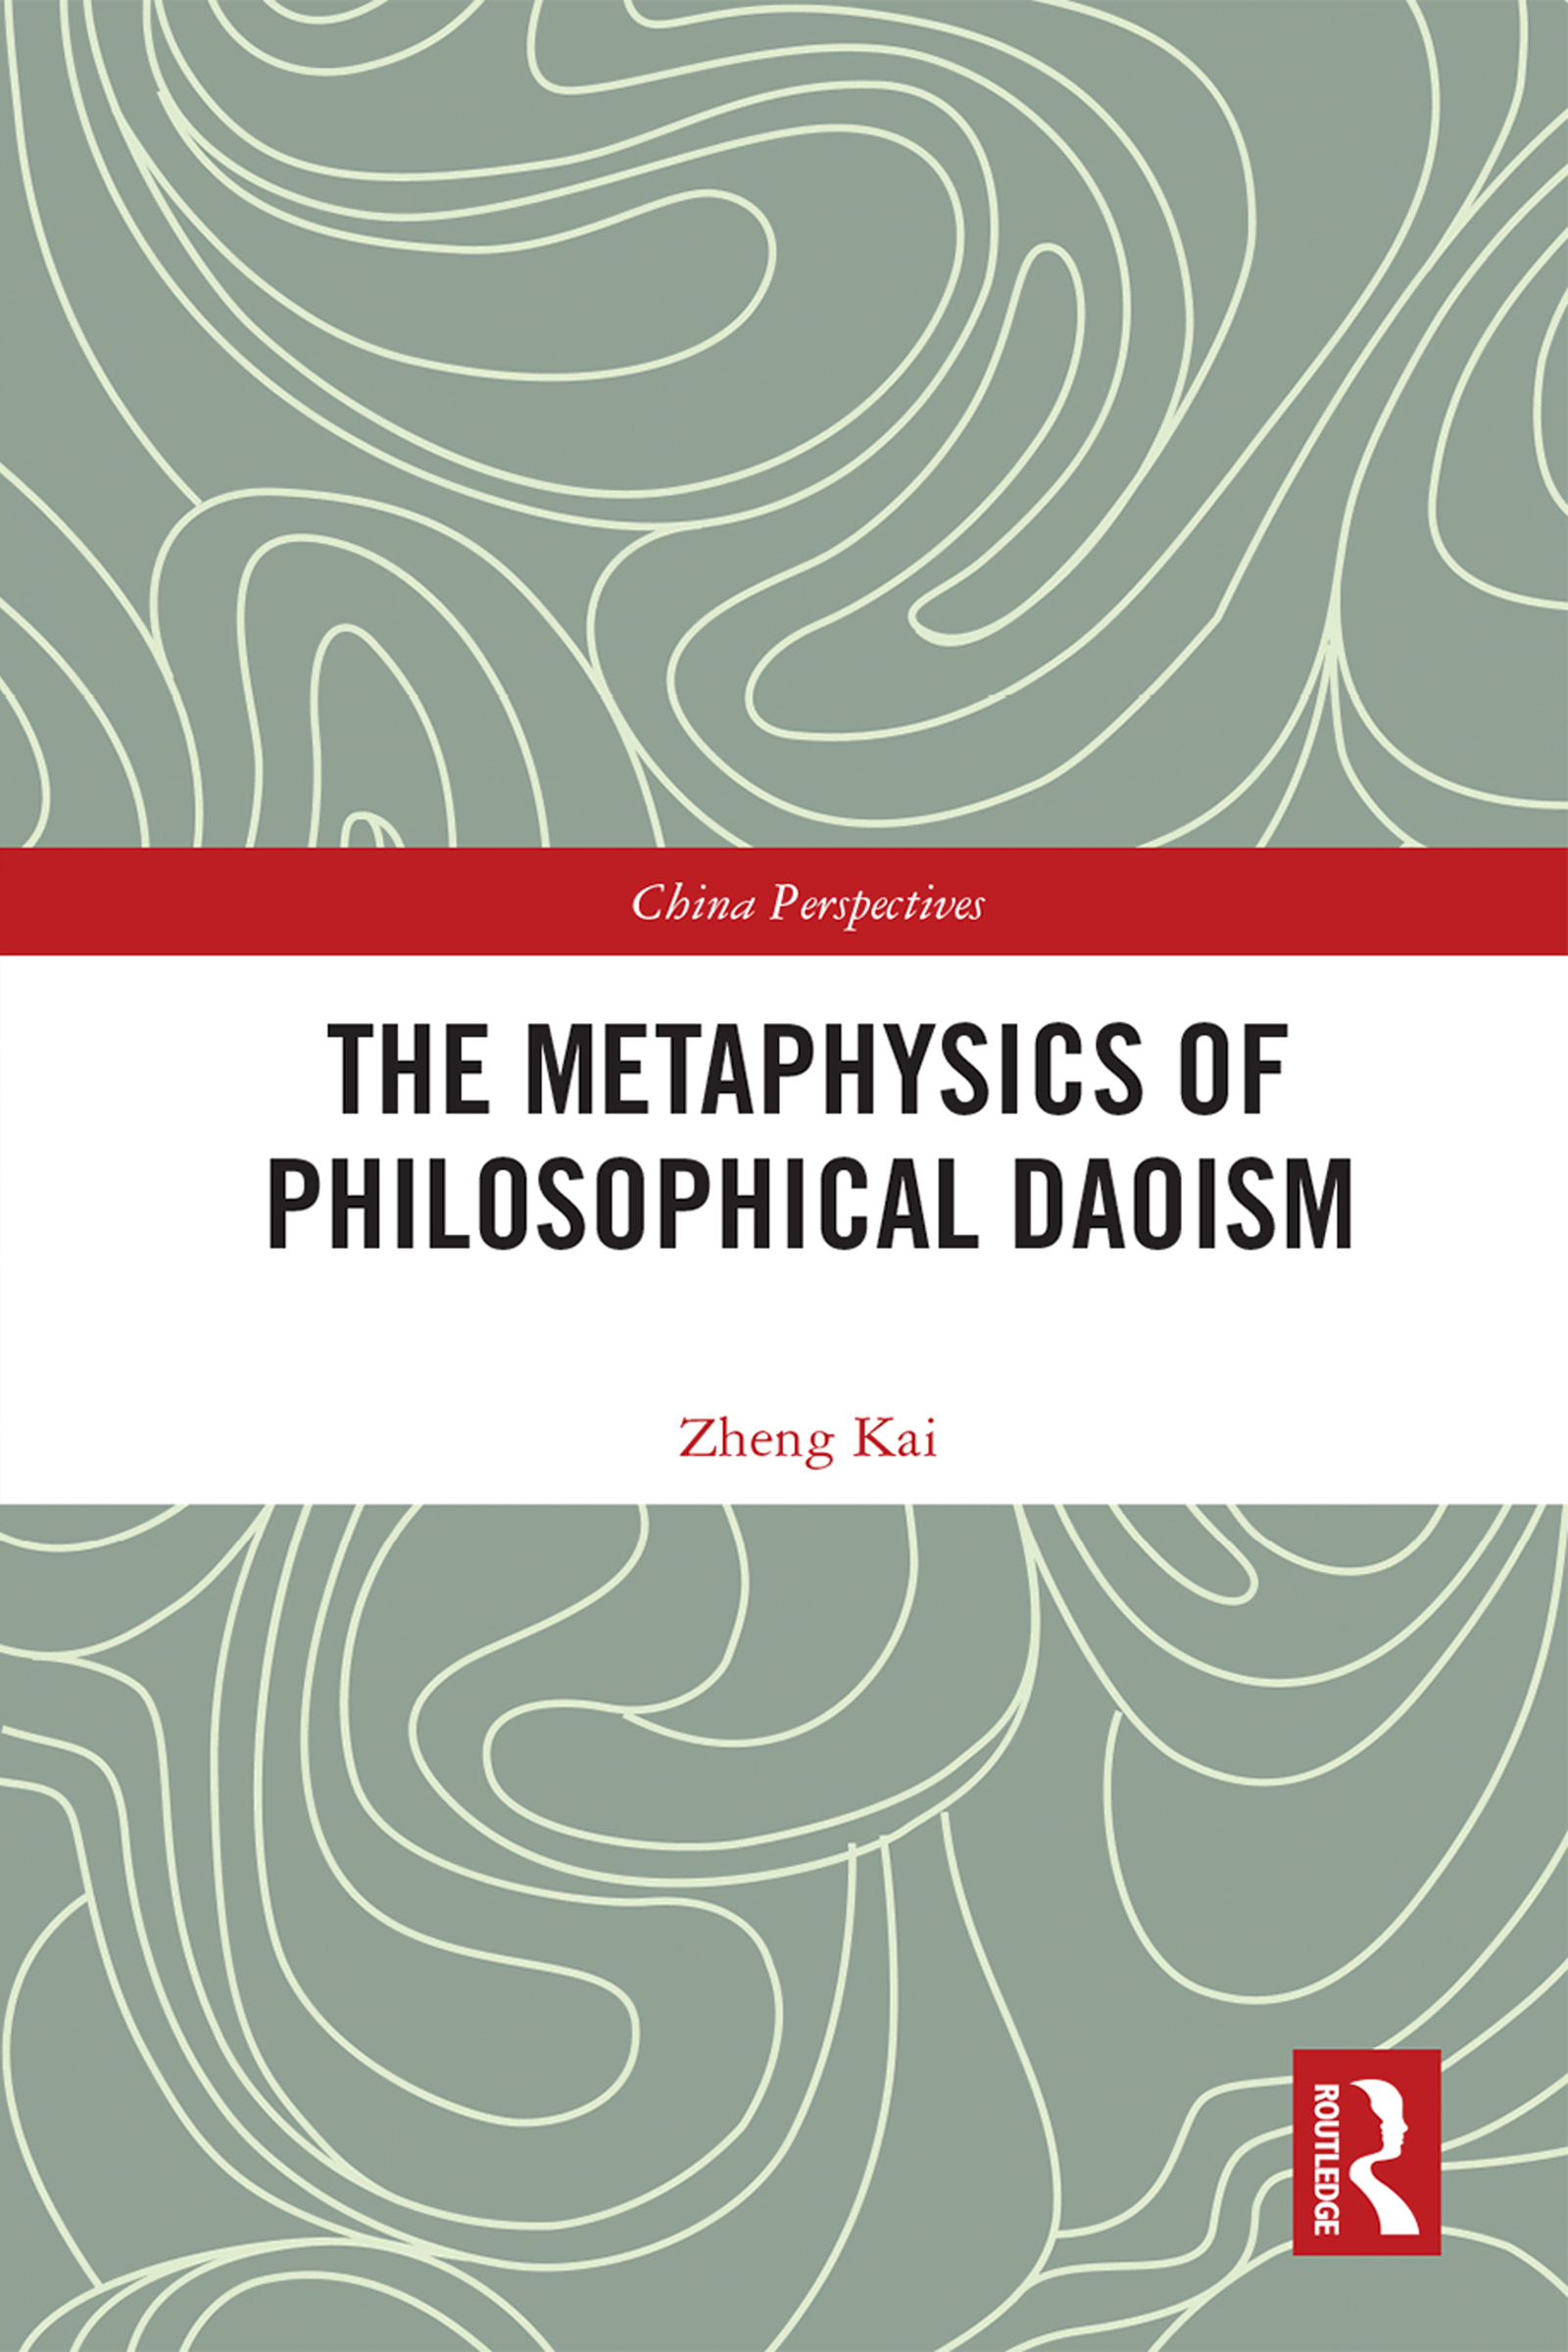 What is Daoist metaphysics?